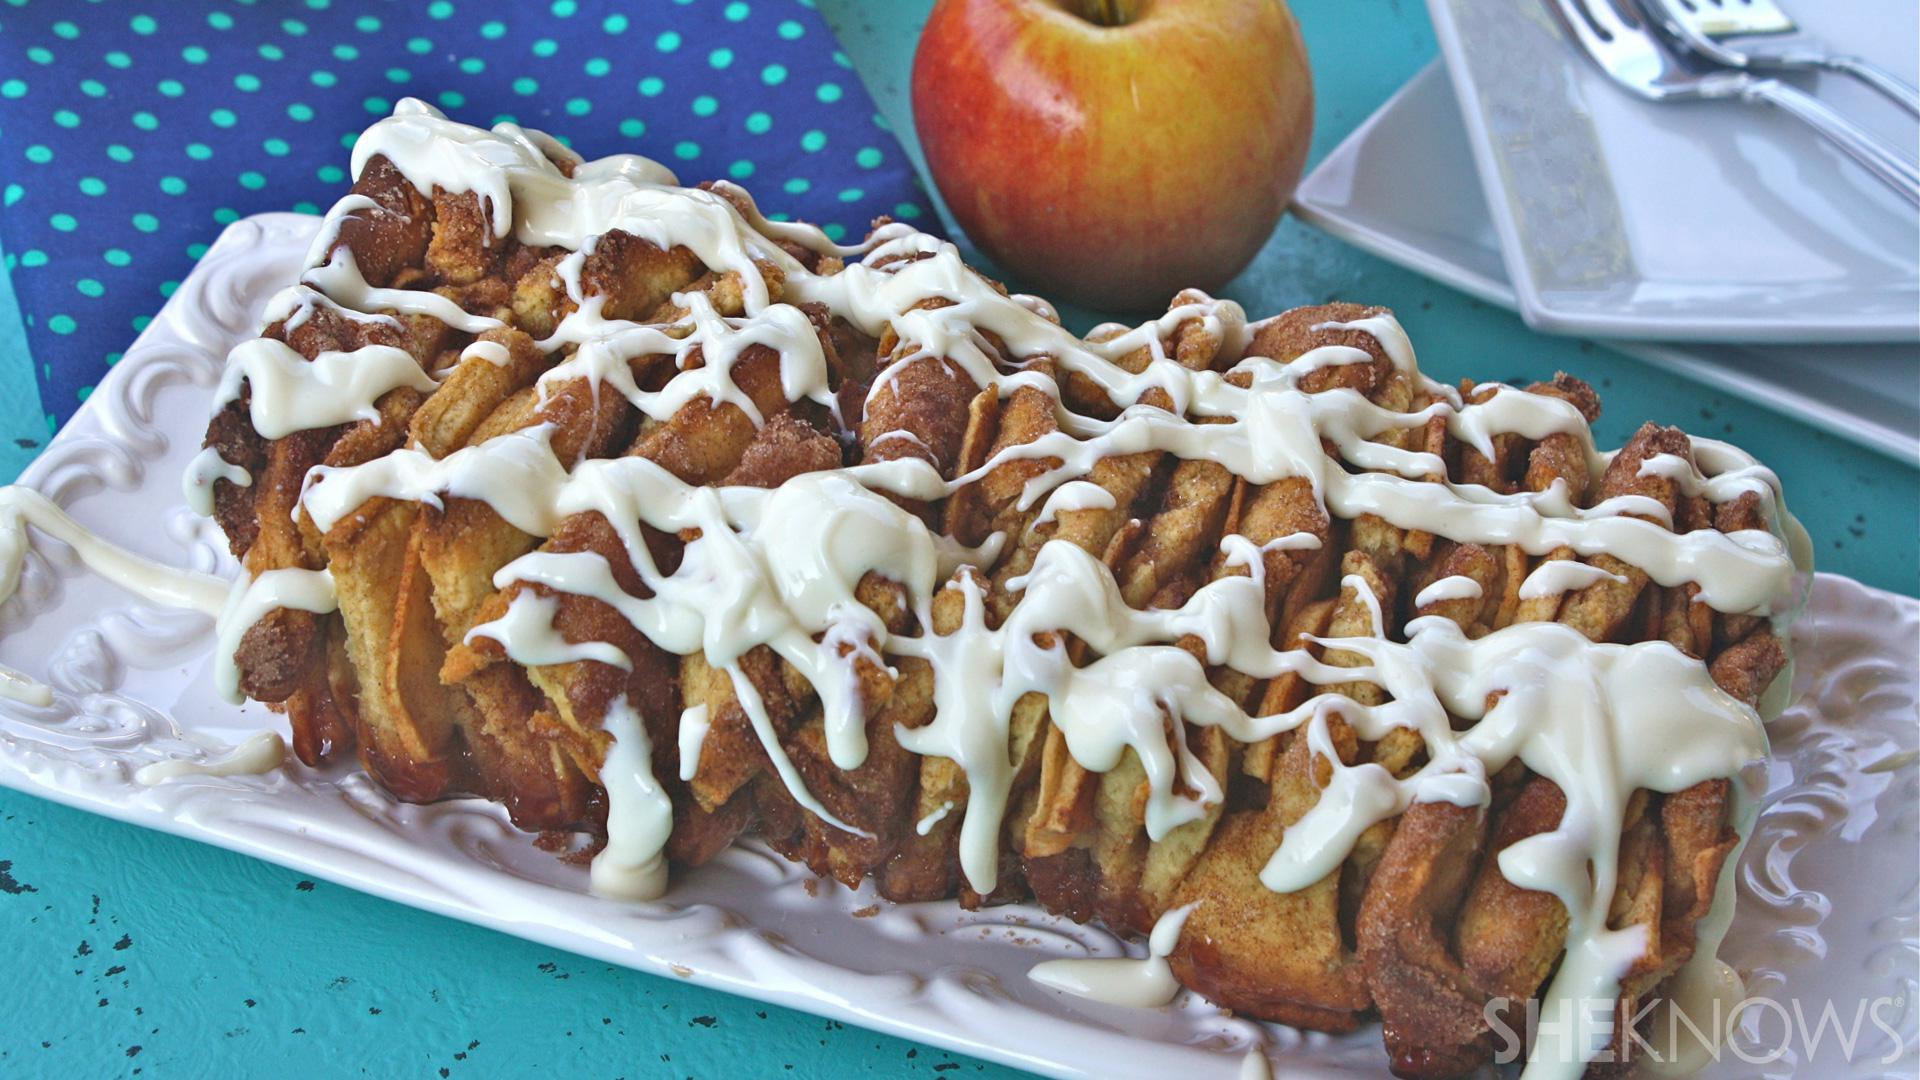 Sticky and sweet gluten-free apple-cinnamon pull-apart bread